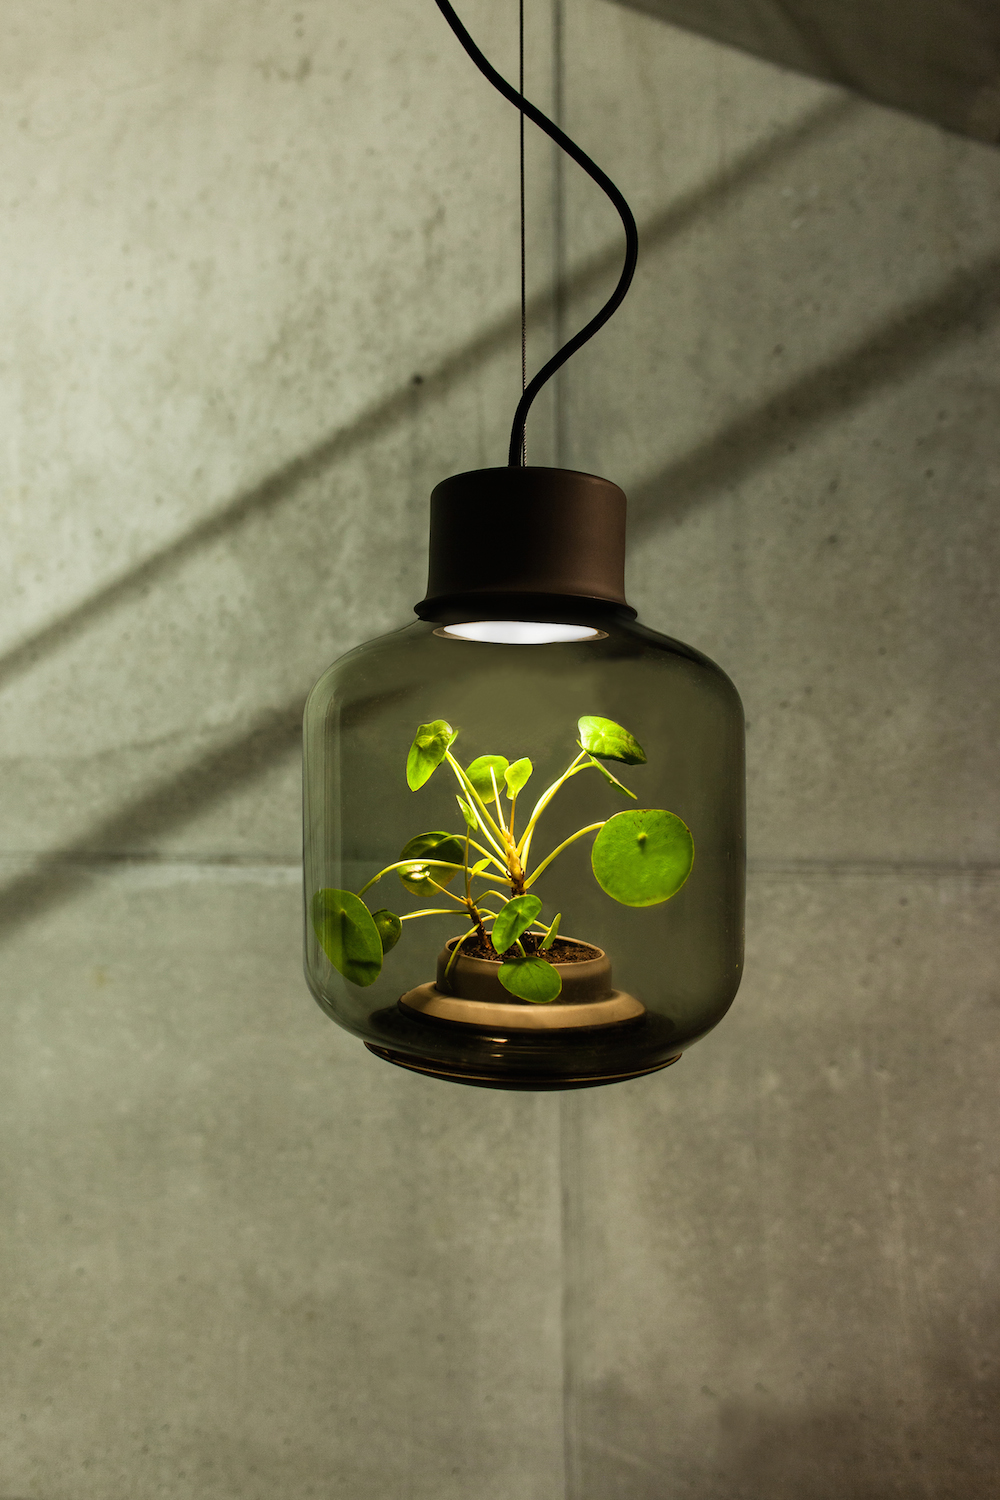 Nui Studio (formerly We Love Eames) has designed a lamp fit for the dim and sun-shielded garden apar